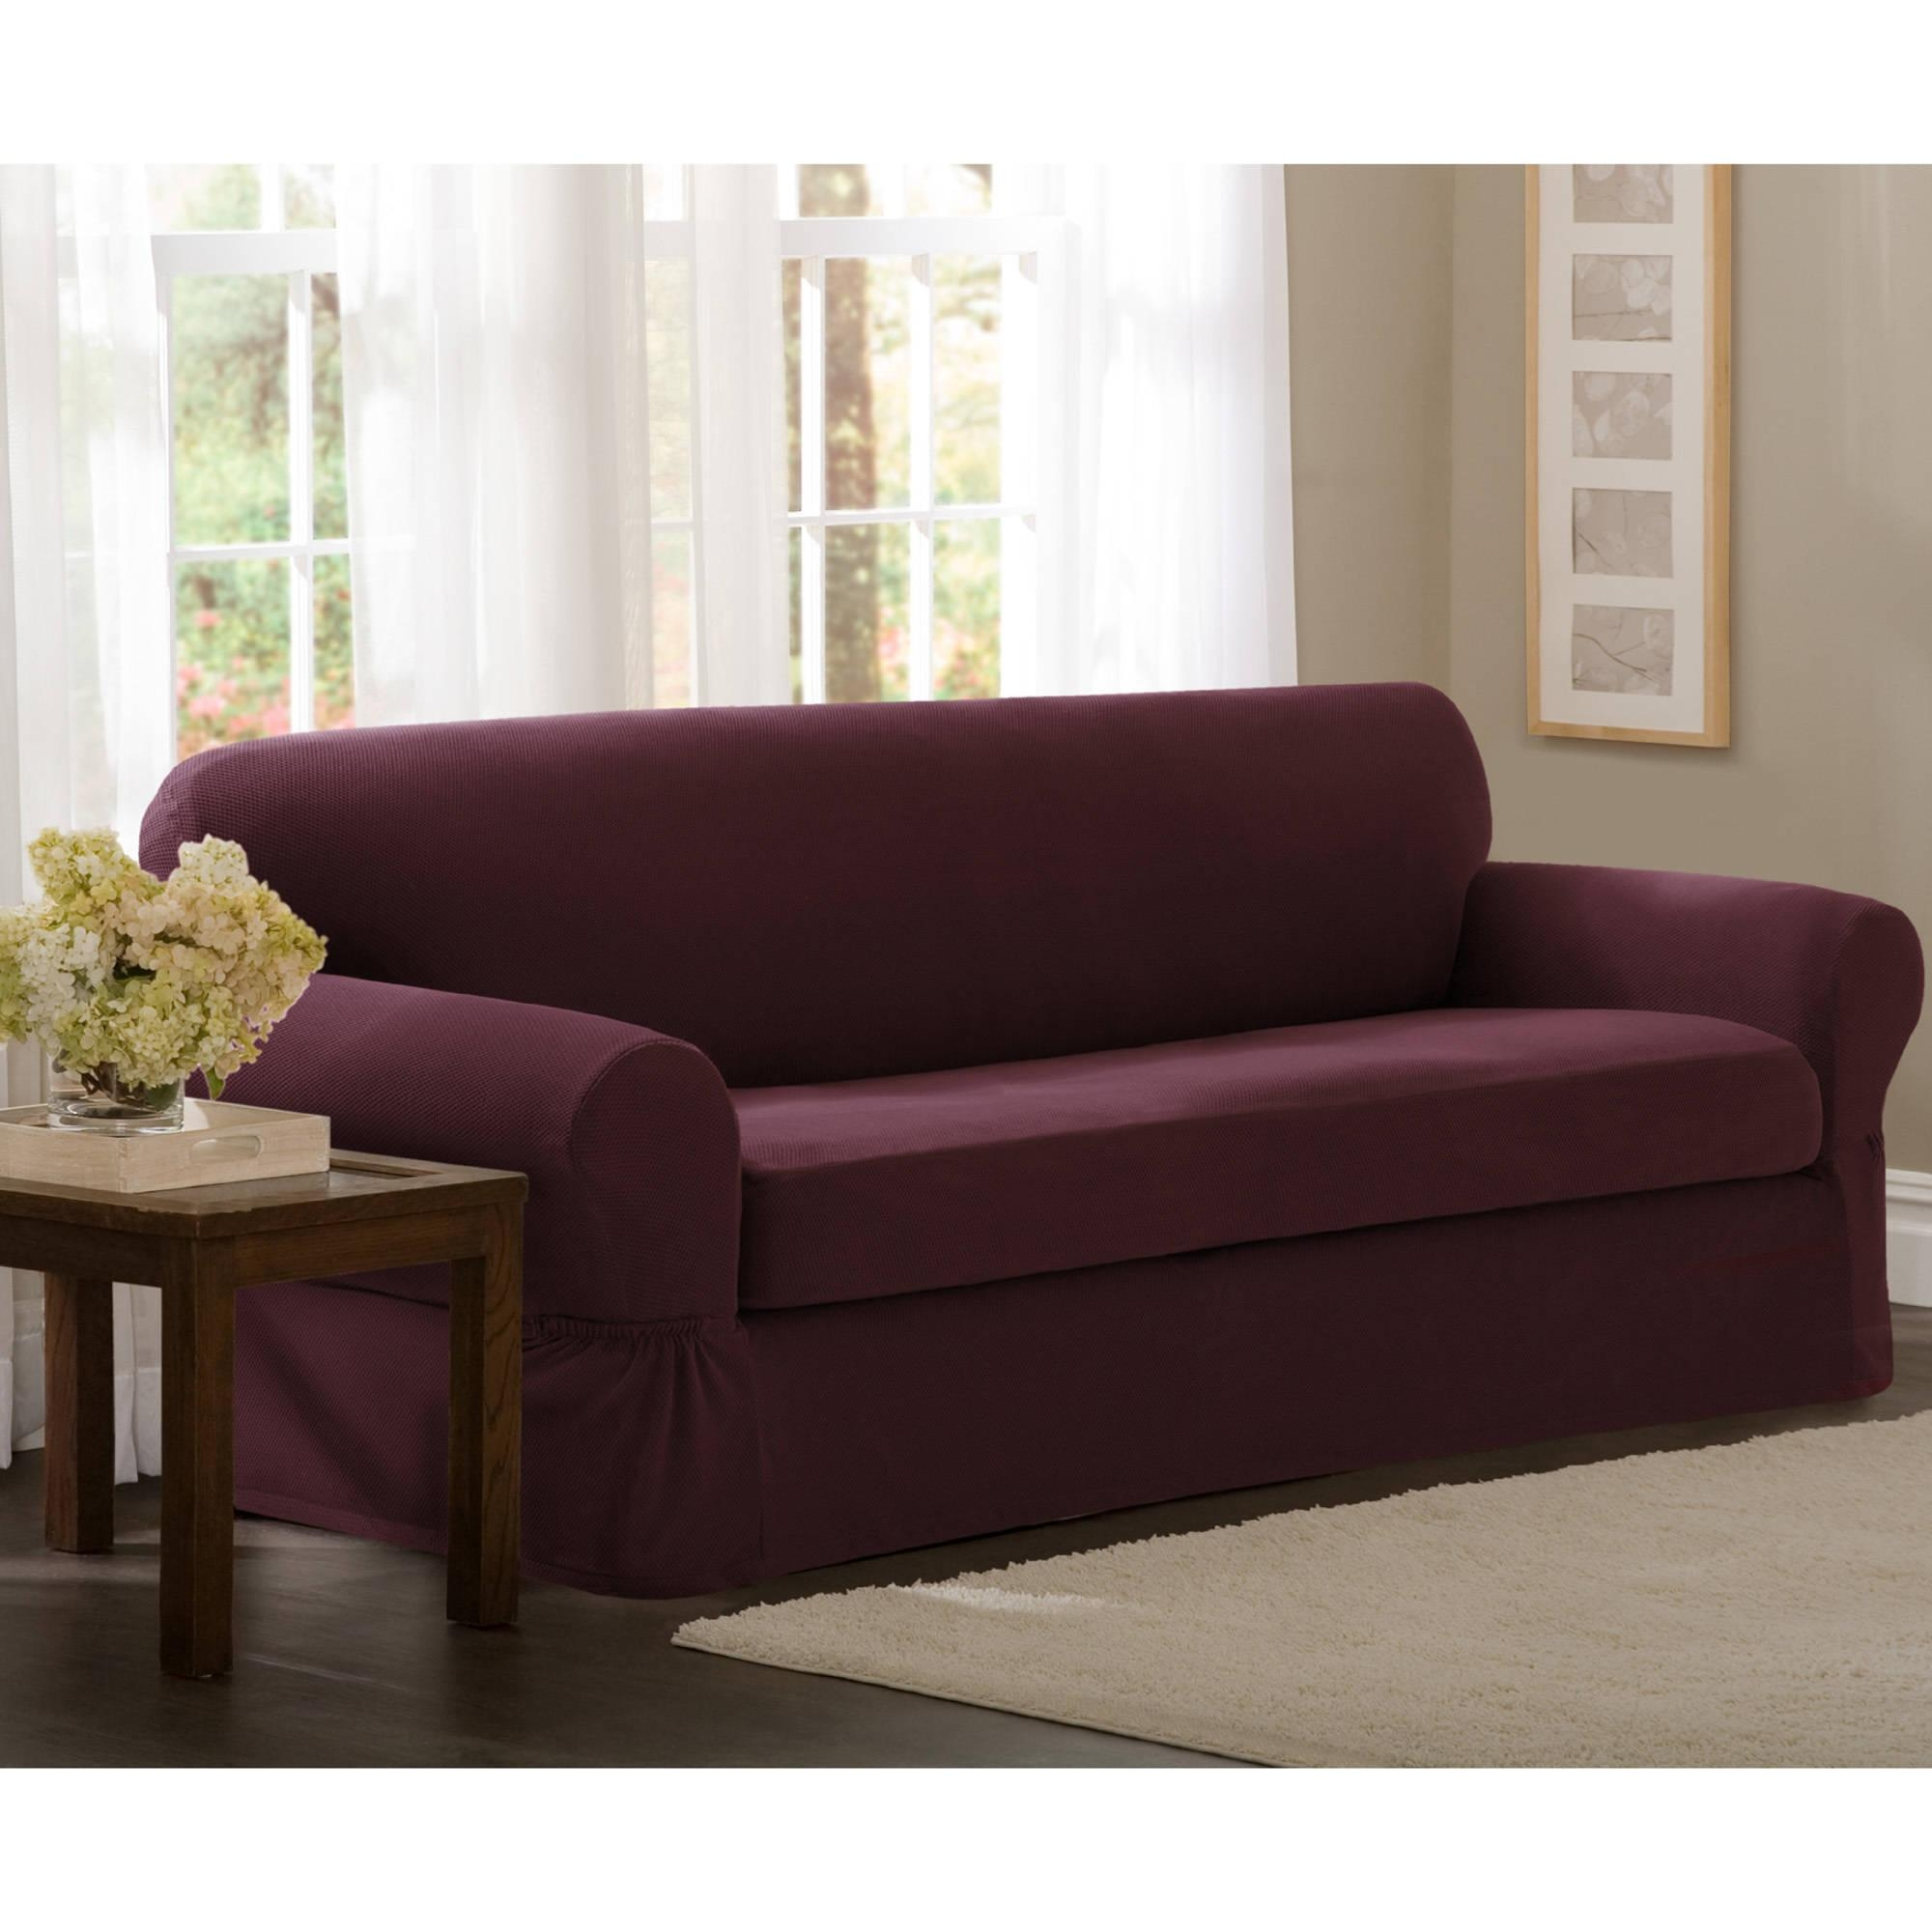 Maytex Stretch 2 Piece Sofa Slipcover – Walmart In Stretch Slipcover Sofas (Image 8 of 20)